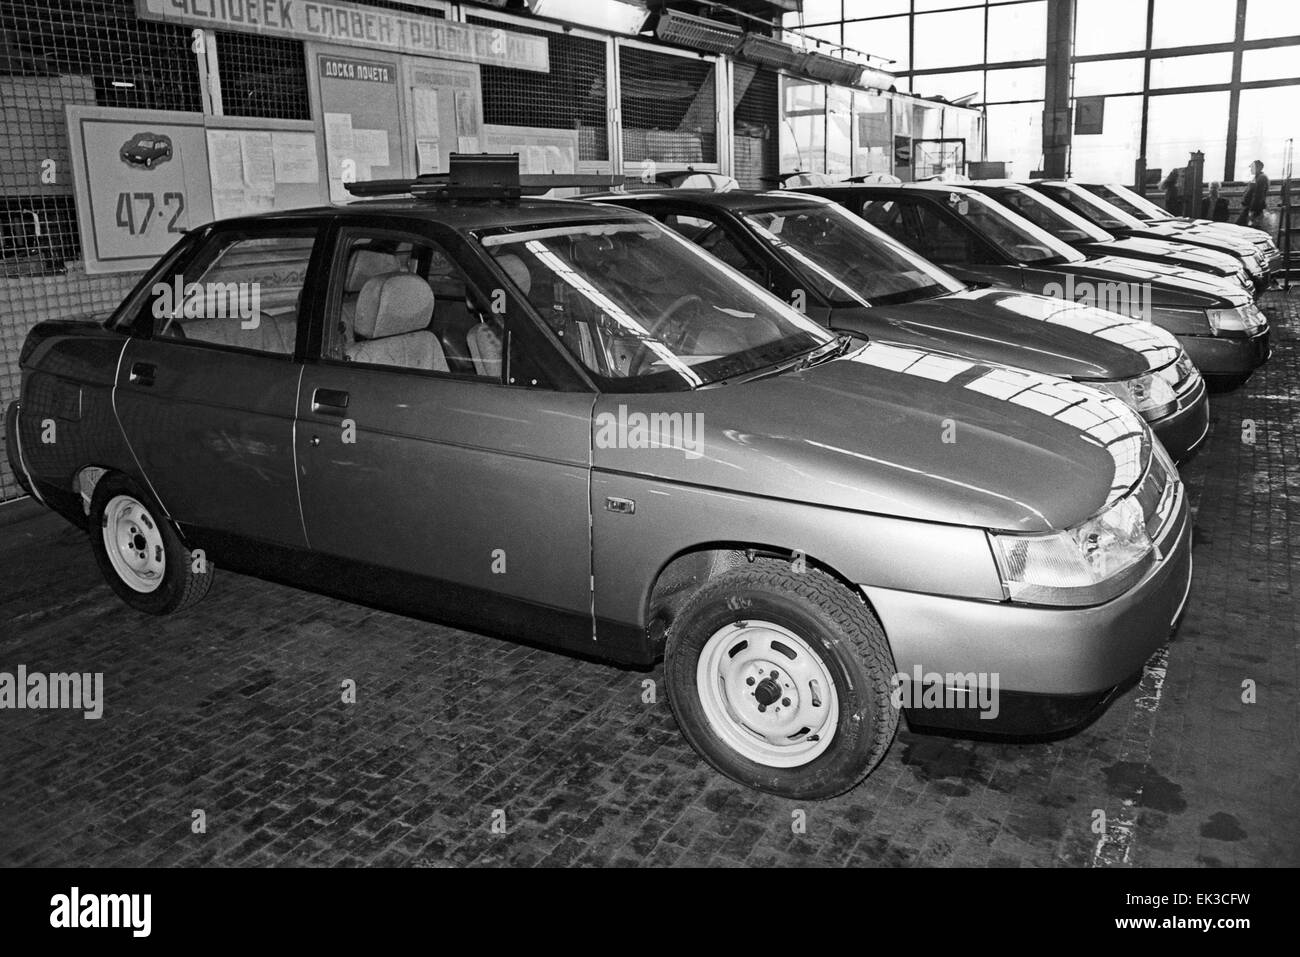 Preparations for series production of VAZ-2110 automobiles underway at  AvtoVAZ, the country's largest automobile producer also known as VAZ, ...